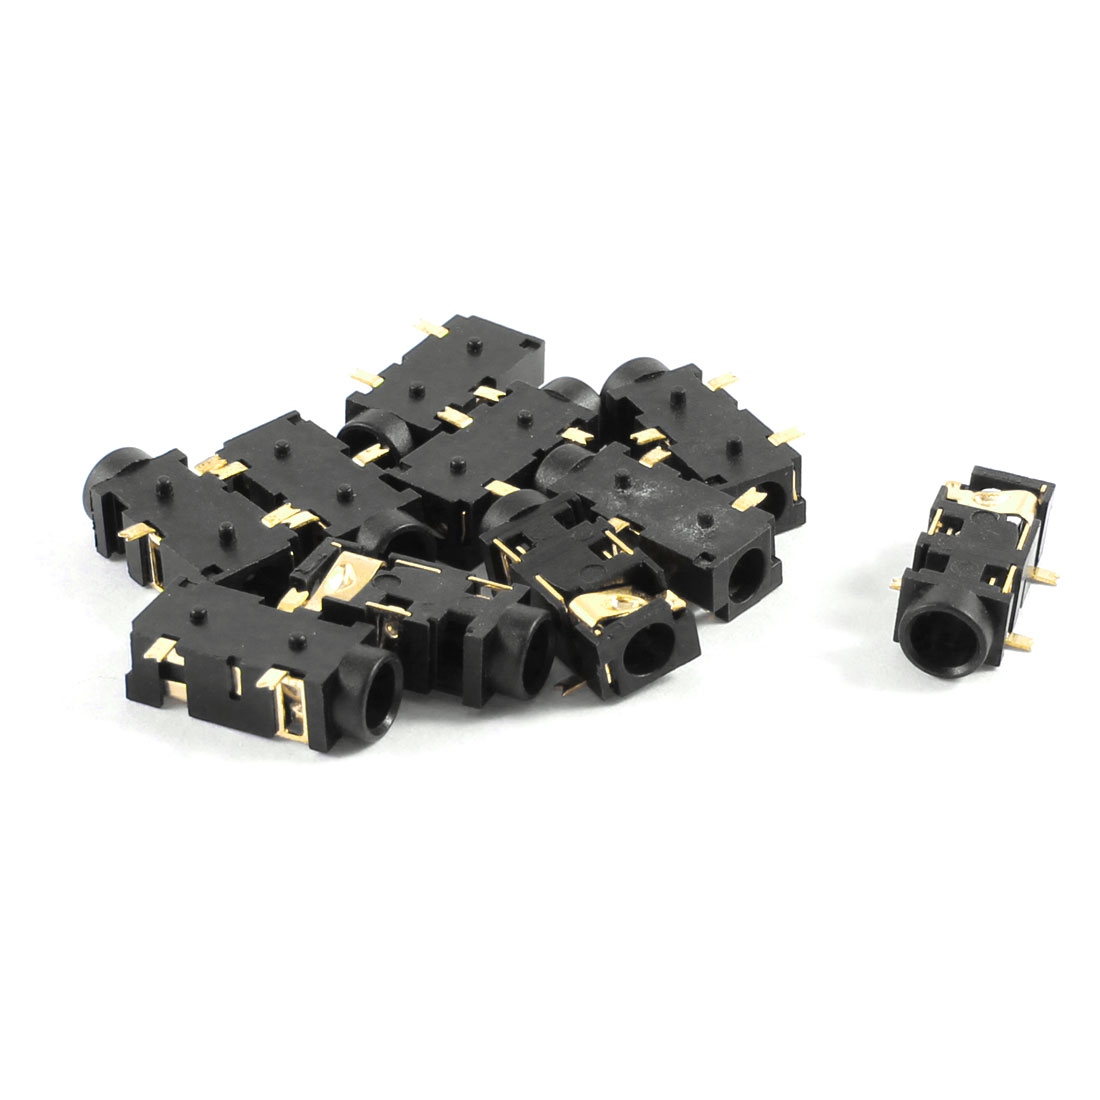 10 Pcs PCB Mount 3 Terminals Female 3.5mm Headphone Audio Jack Socket